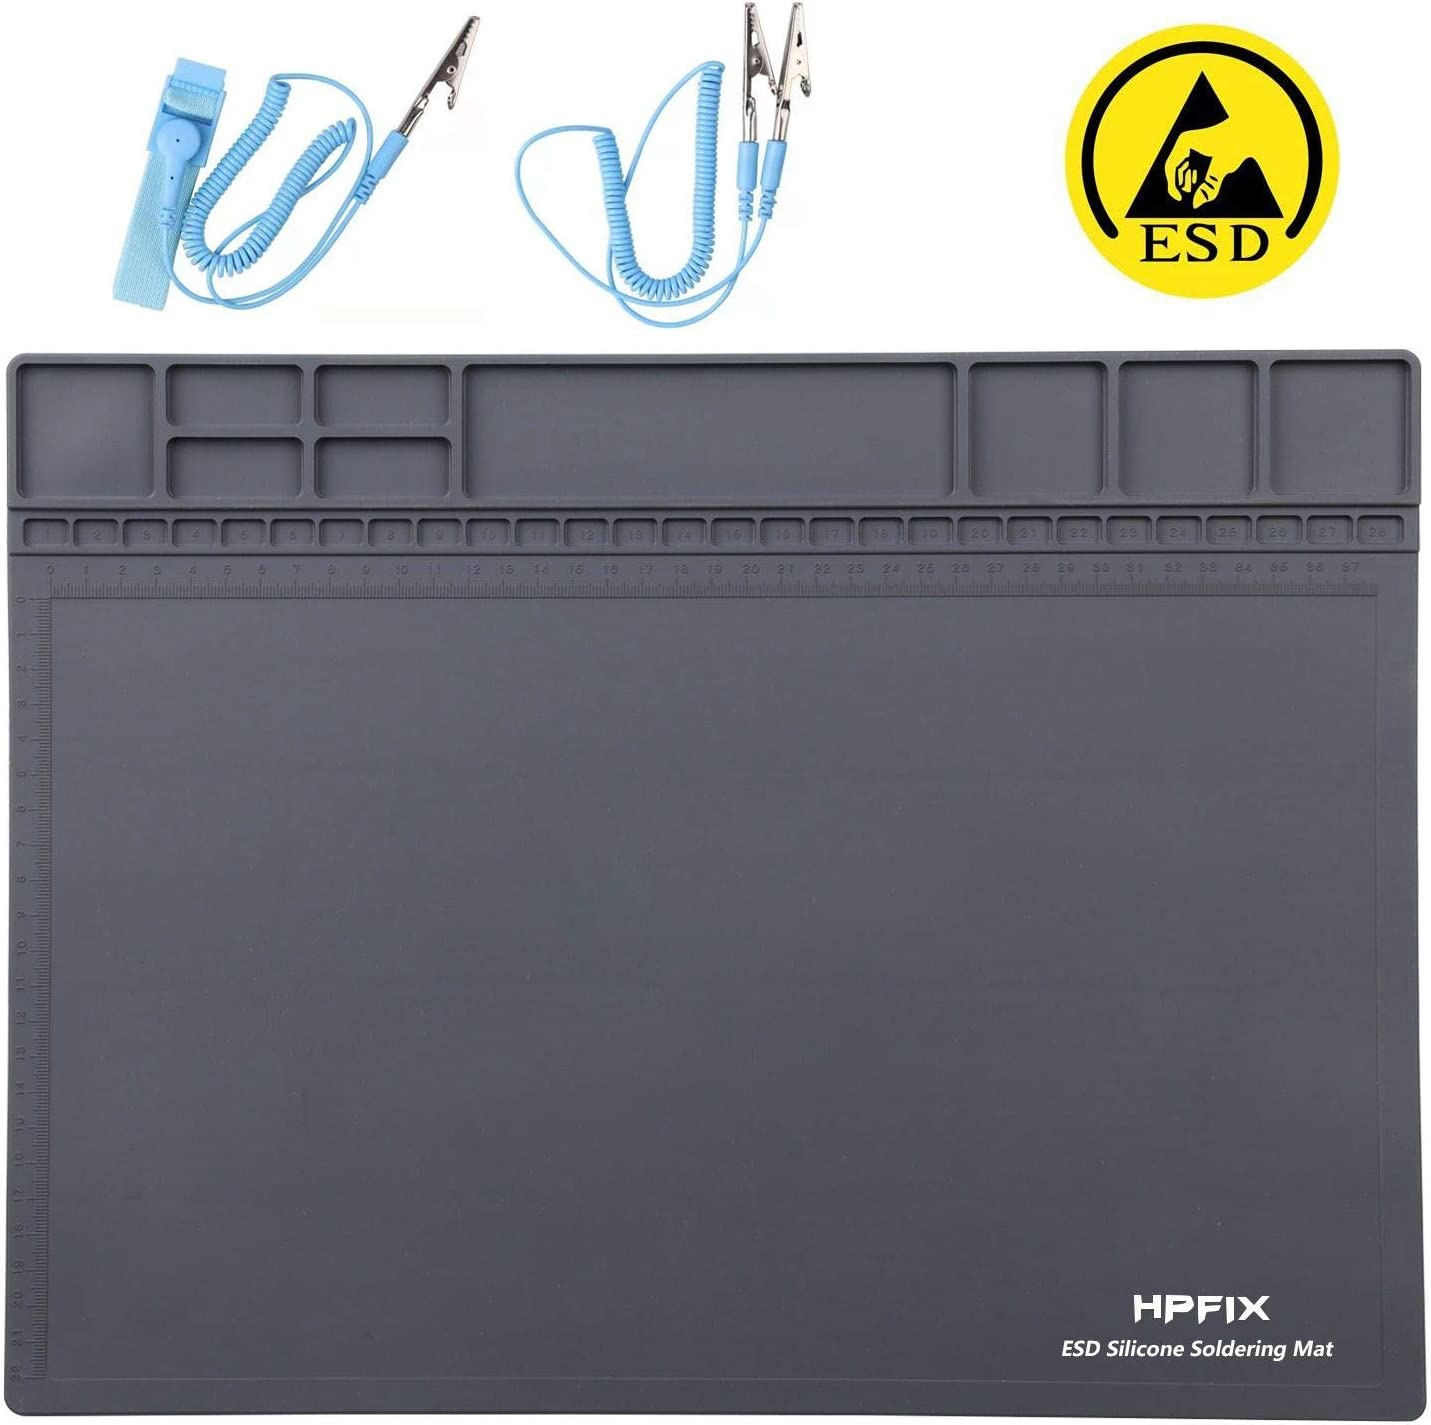 """Anti-Static Mat ESD Safe for Electronic Includes ESD Wristband and Grounding Wire, HPFIX Silicone Soldering Repair Mat 932°F Heat Resistant for iPhone iPad iMac, Laptop, Computer, 15.9"""" x 12"""" Grey"""